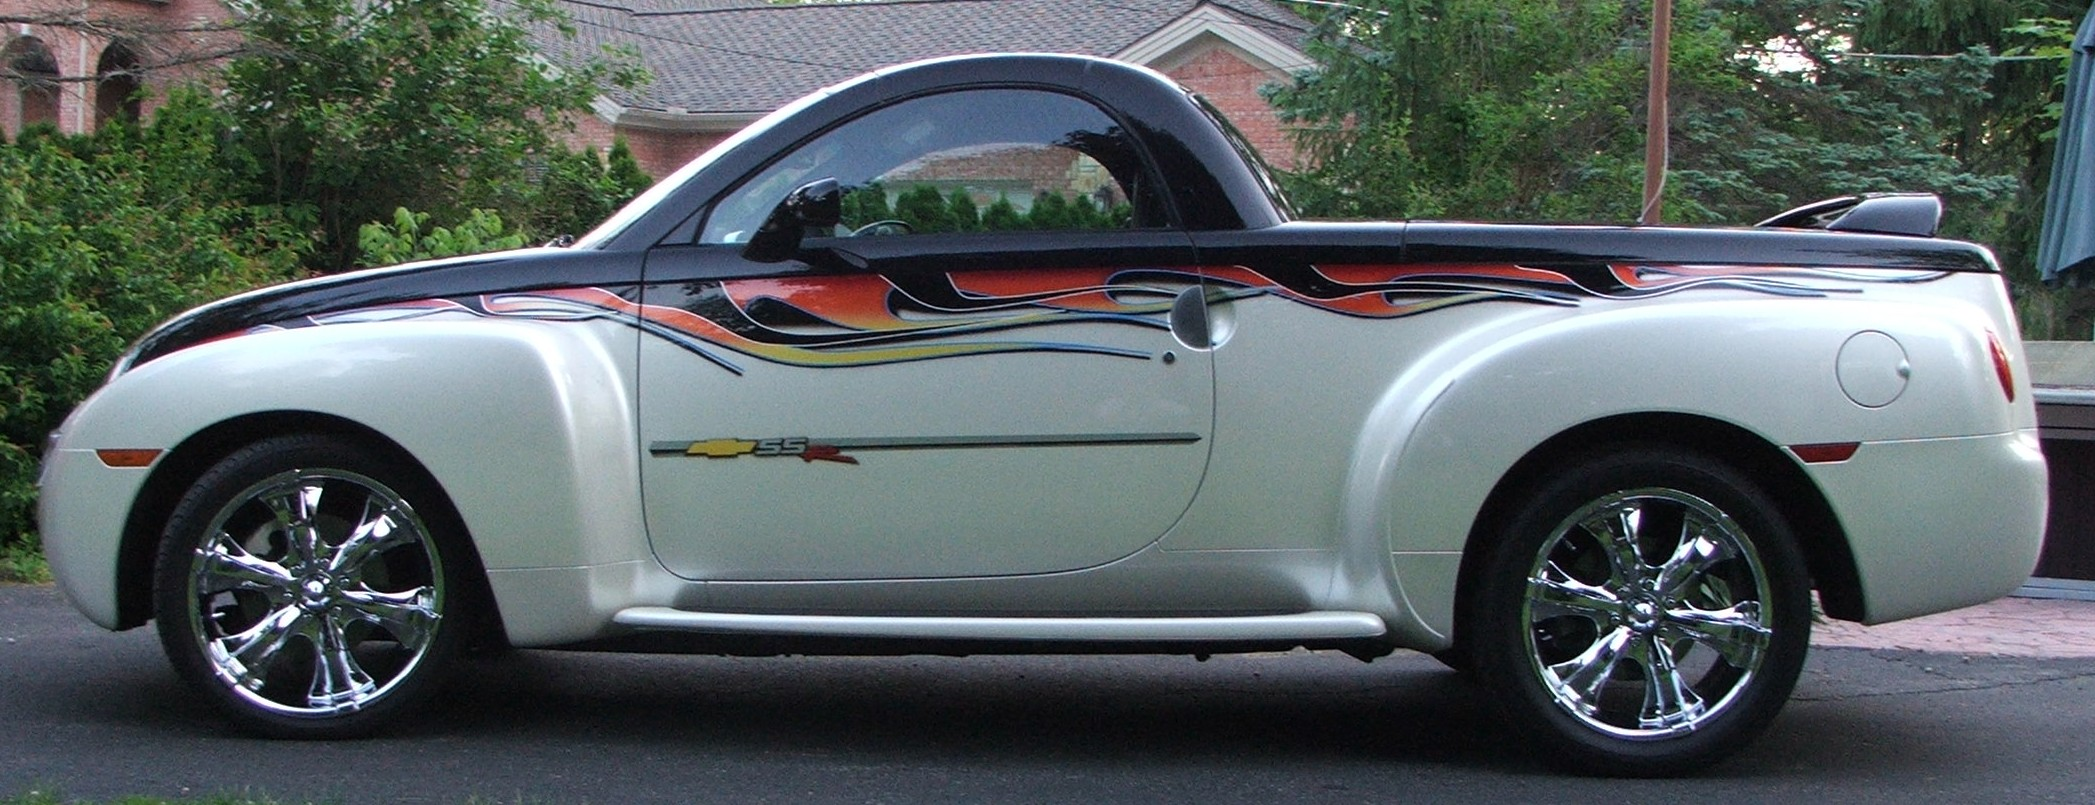 All Chevy 2006 chevrolet ssr for sale : Custom perl white SSR for sale - Chevy SSR Forum